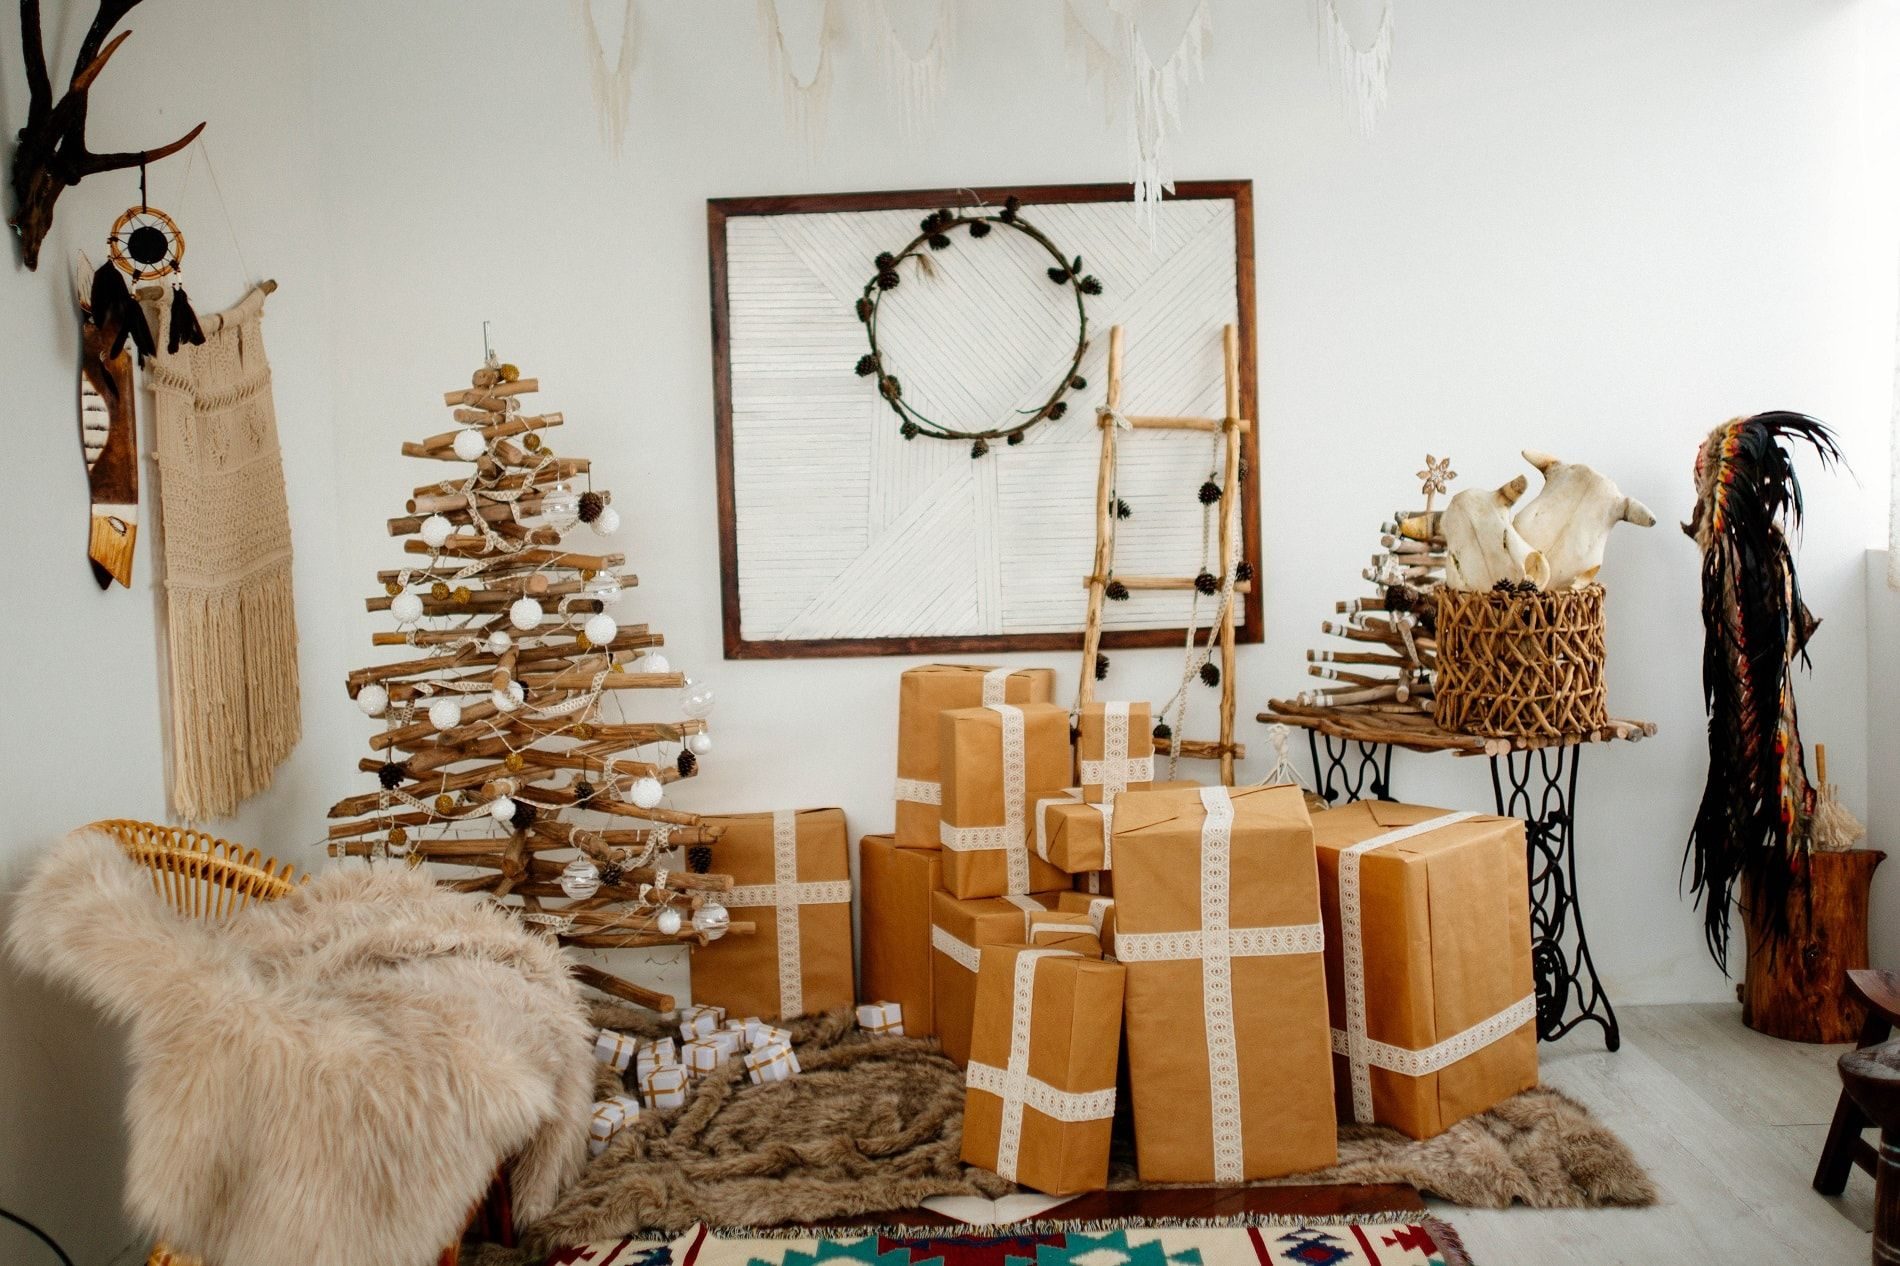 5 Shipping and Logistics Mistakes to Avoid During the Holidays